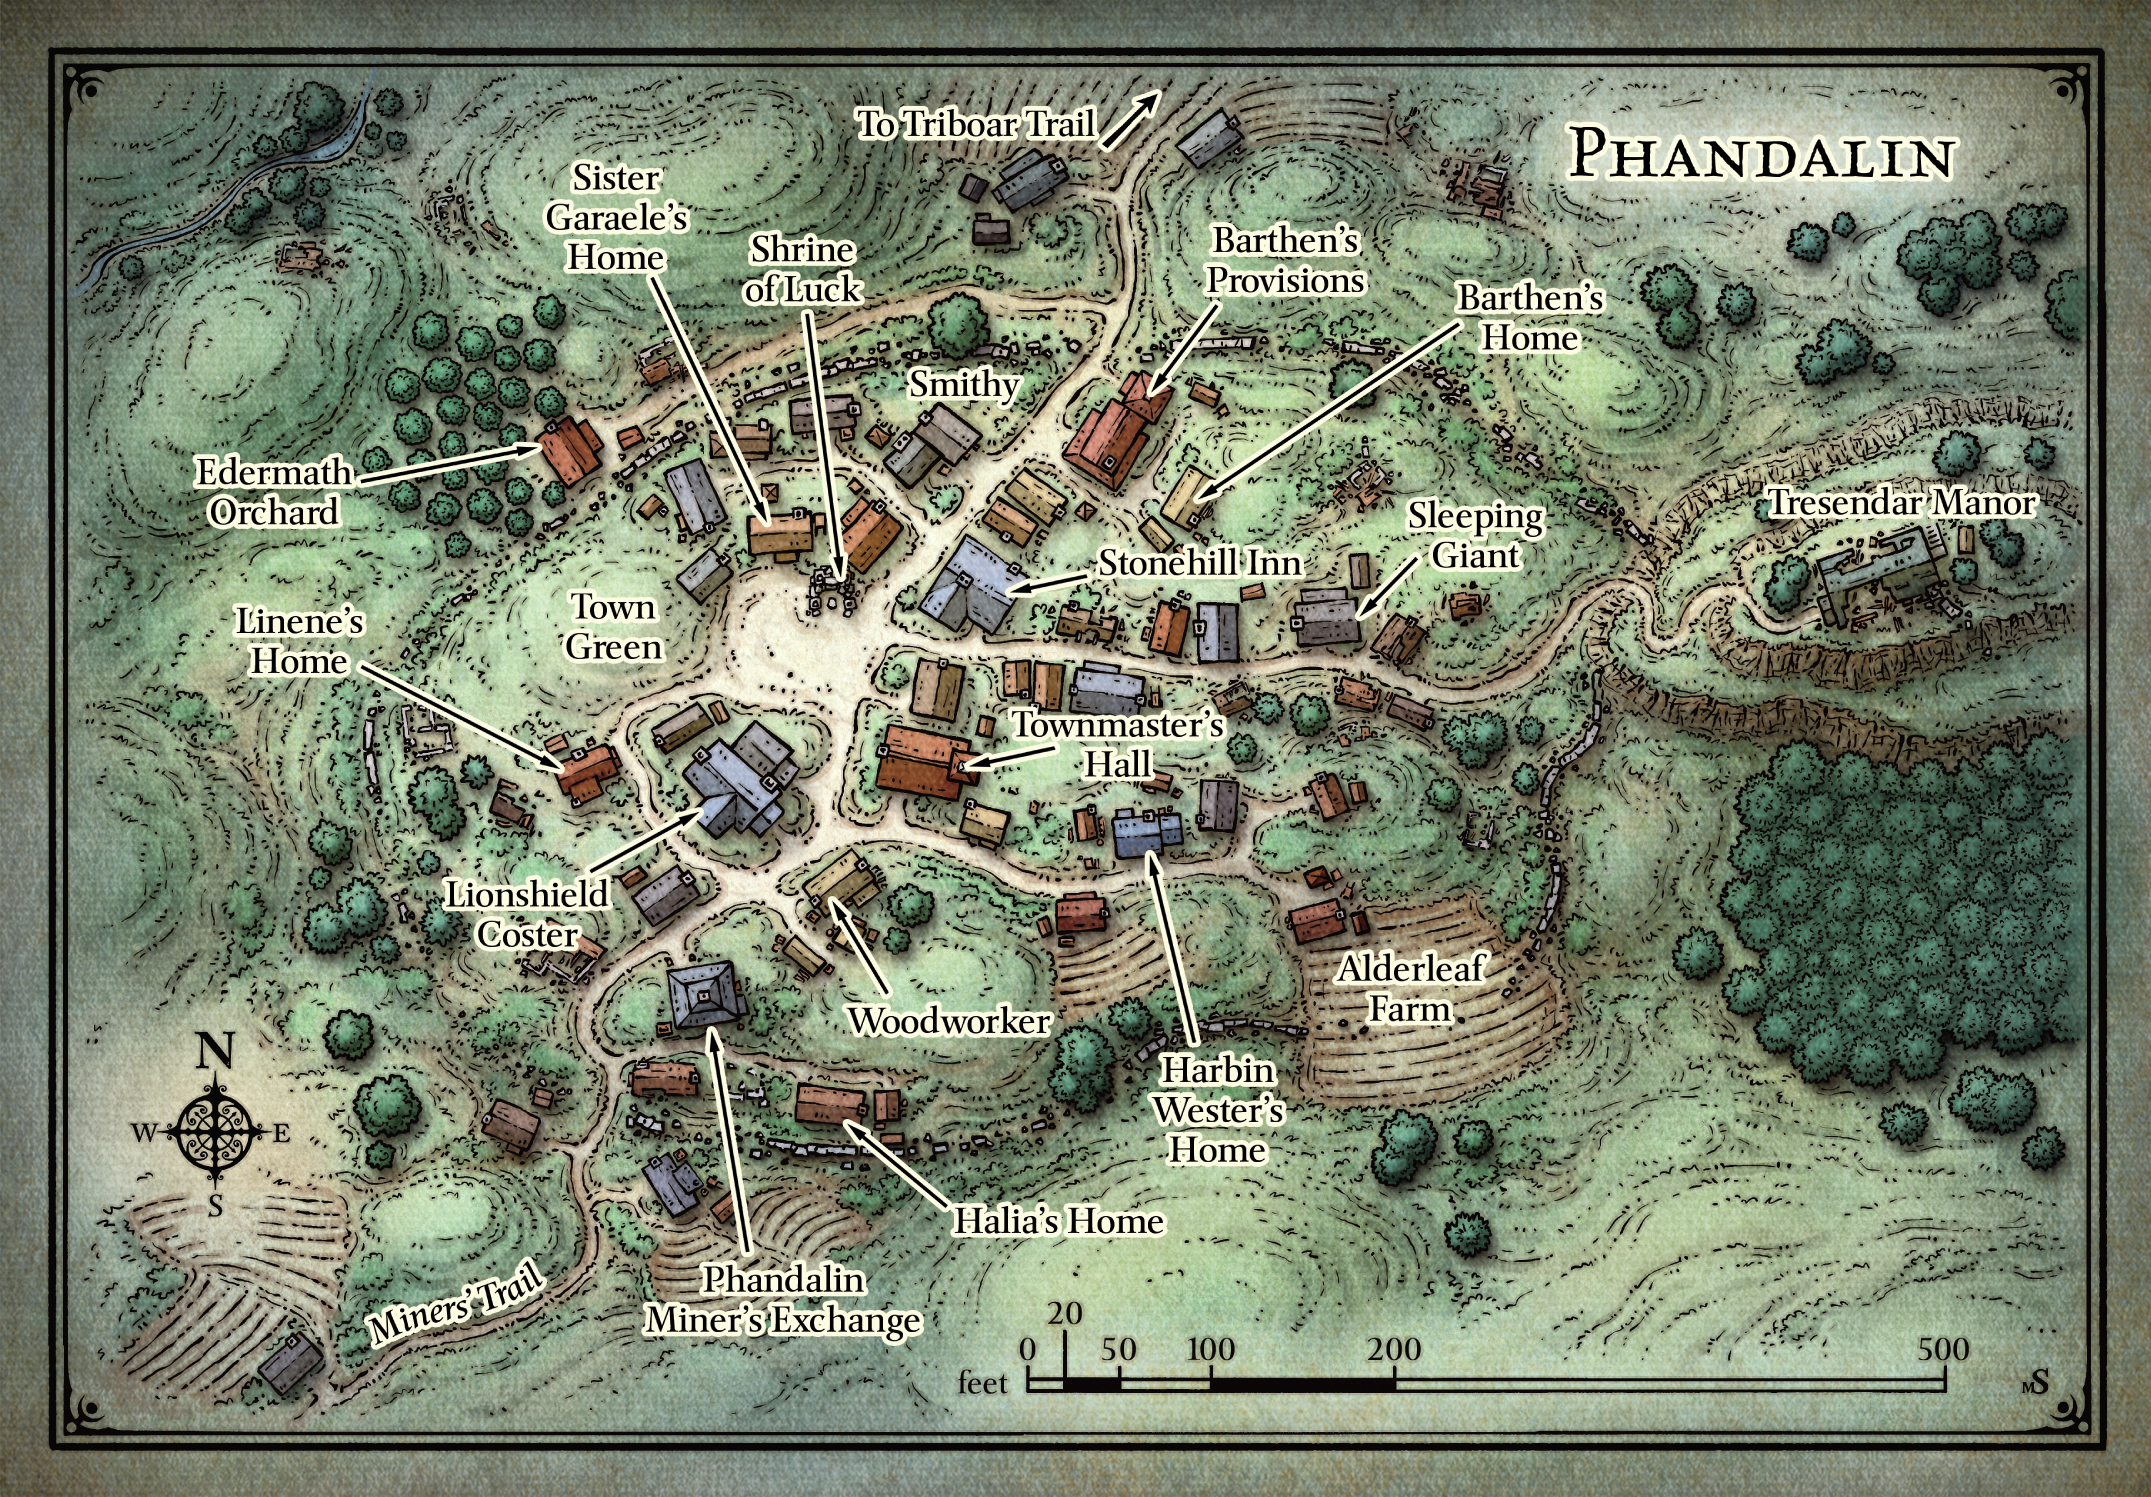 Map of Phandalin 5YAQY